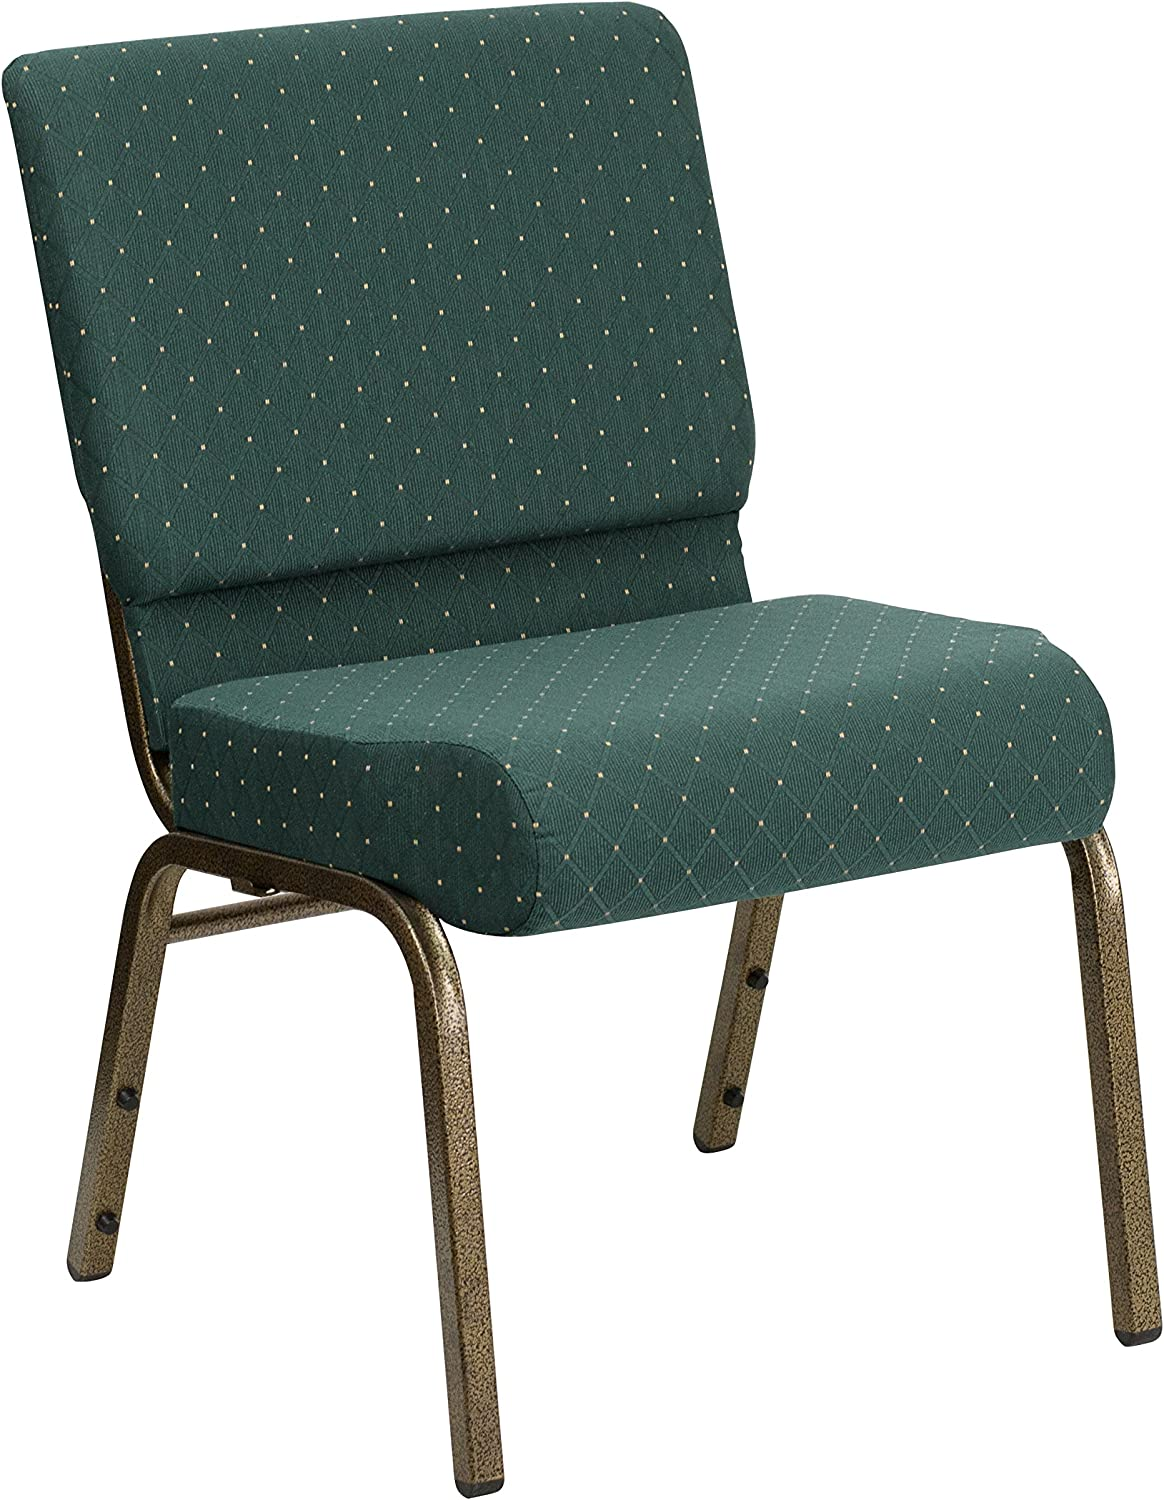 Gold Vein Frame Flash Furniture HERCULES Series 21W Stacking Church Chair in Hunter Green Dot Patterned Fabric